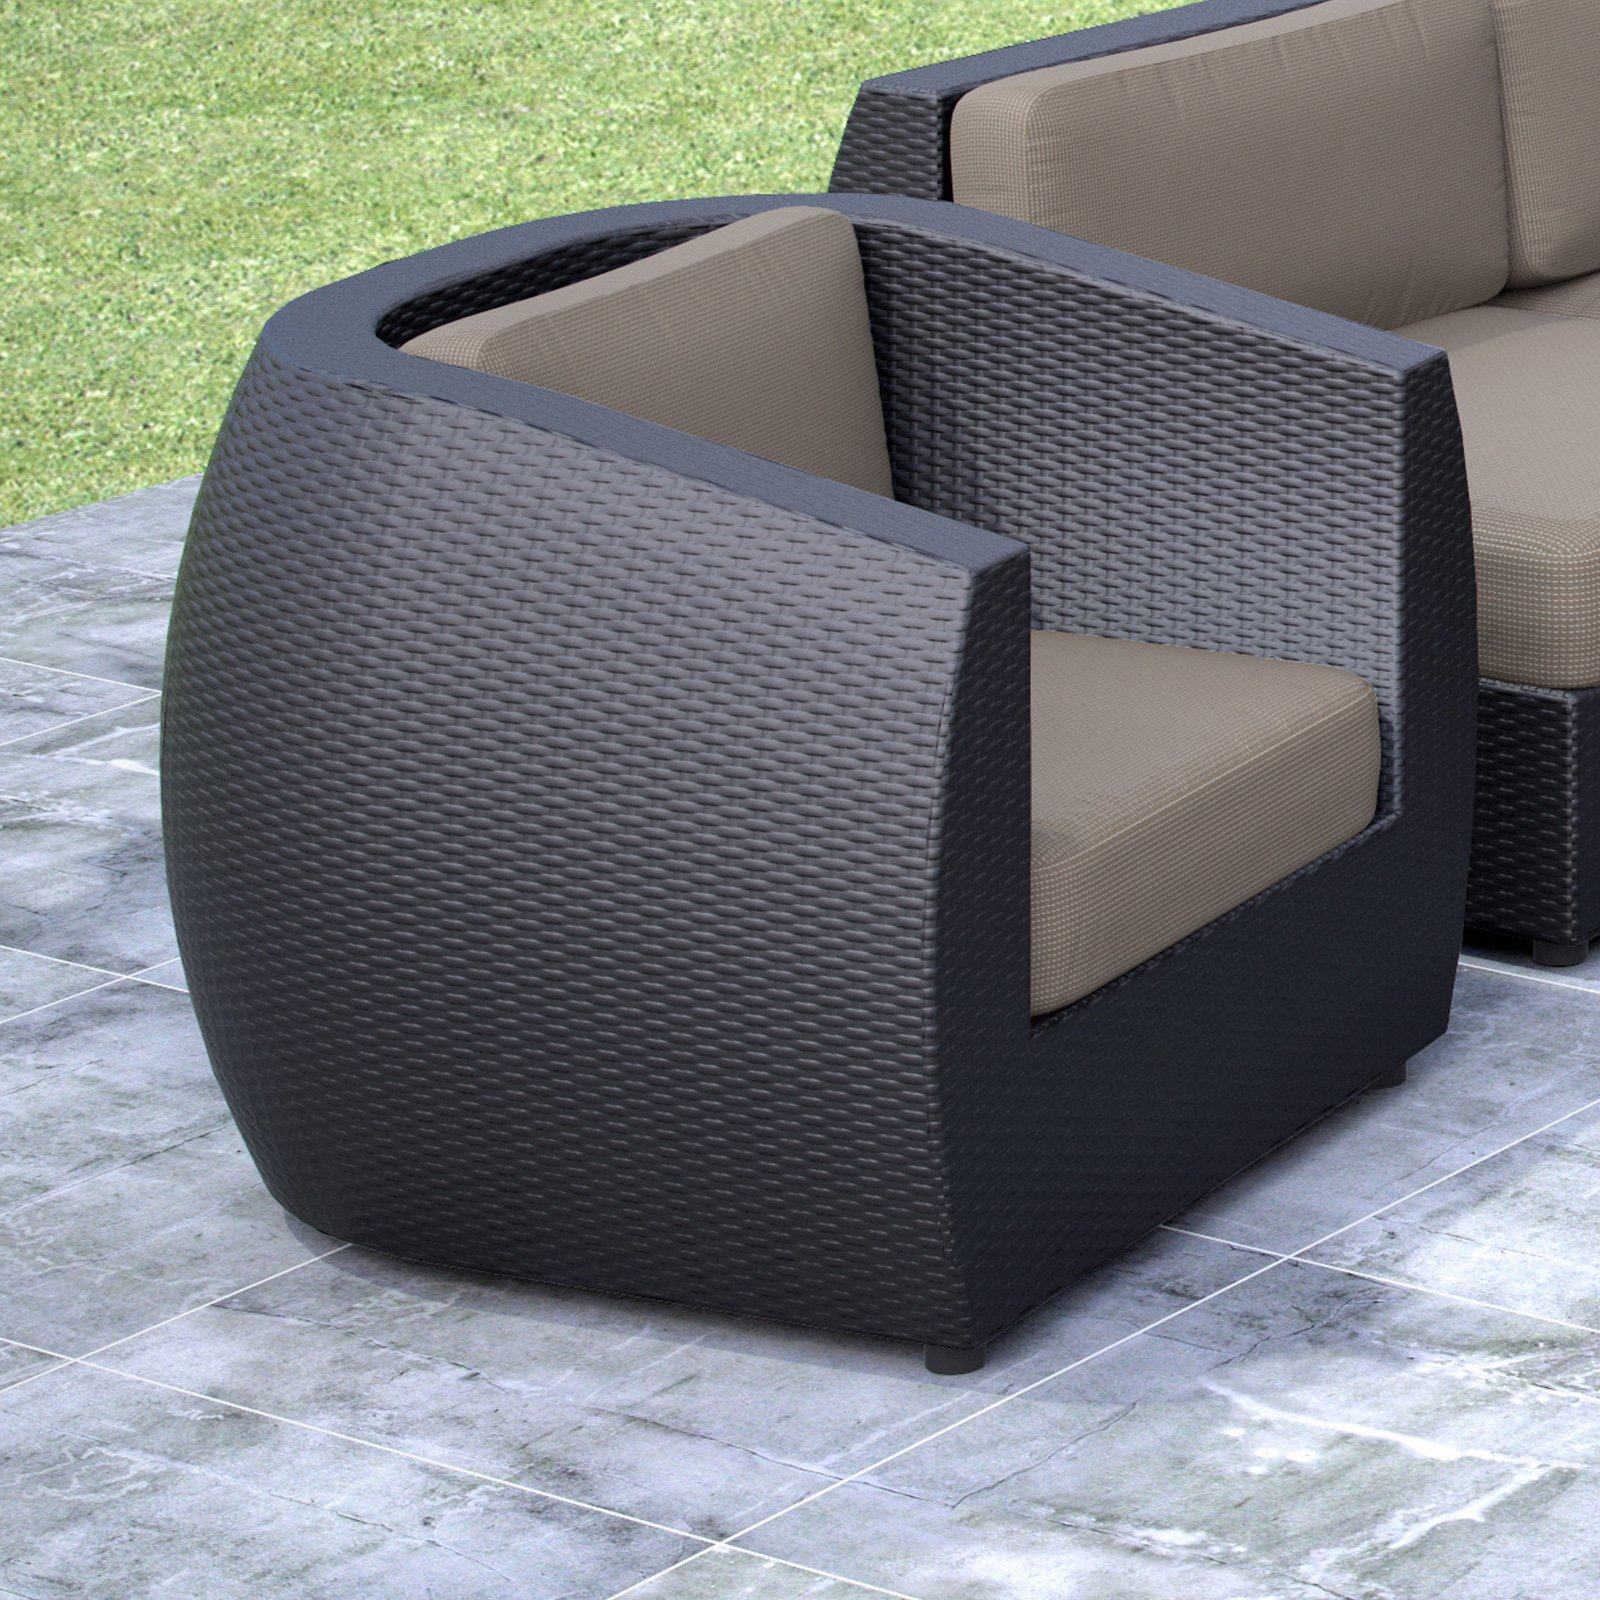 CorLiving Seattle Patio Chair, Textured Black Weave